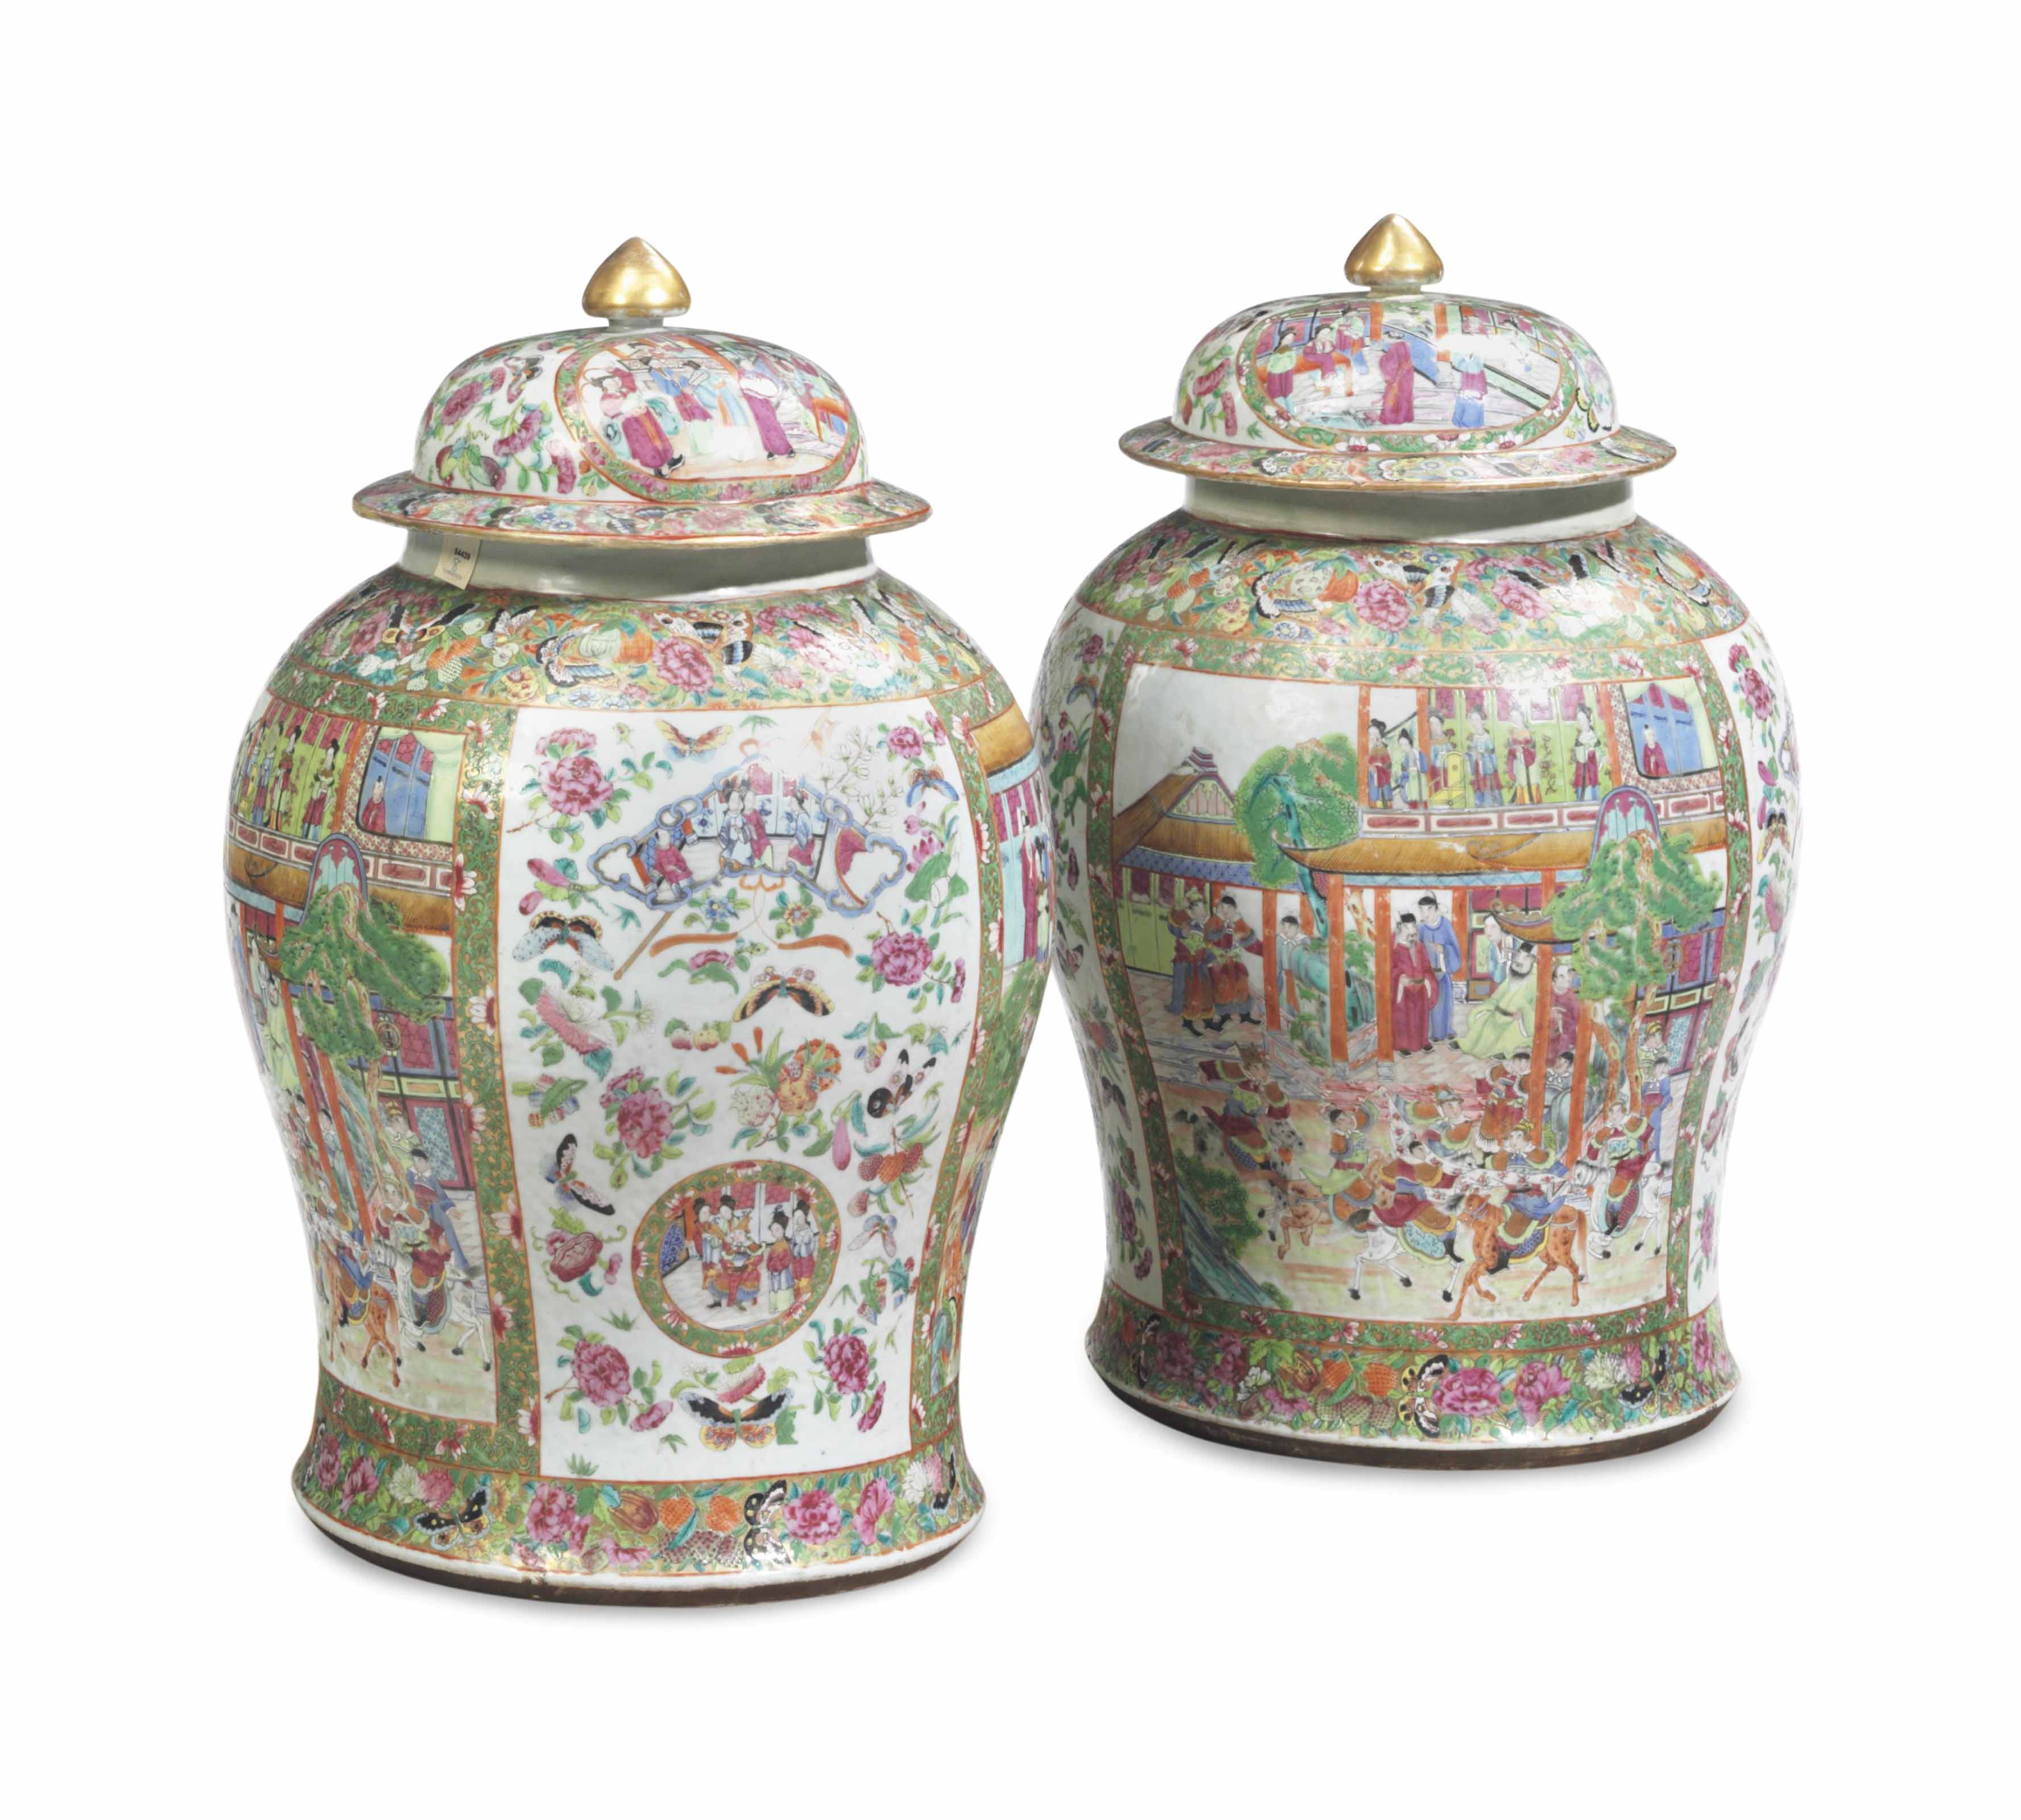 A PAIR OF CHINESE EXPORT LARGE 'CANTON FAMILLE ROSE' BALUSTER JARS AND COVERS,